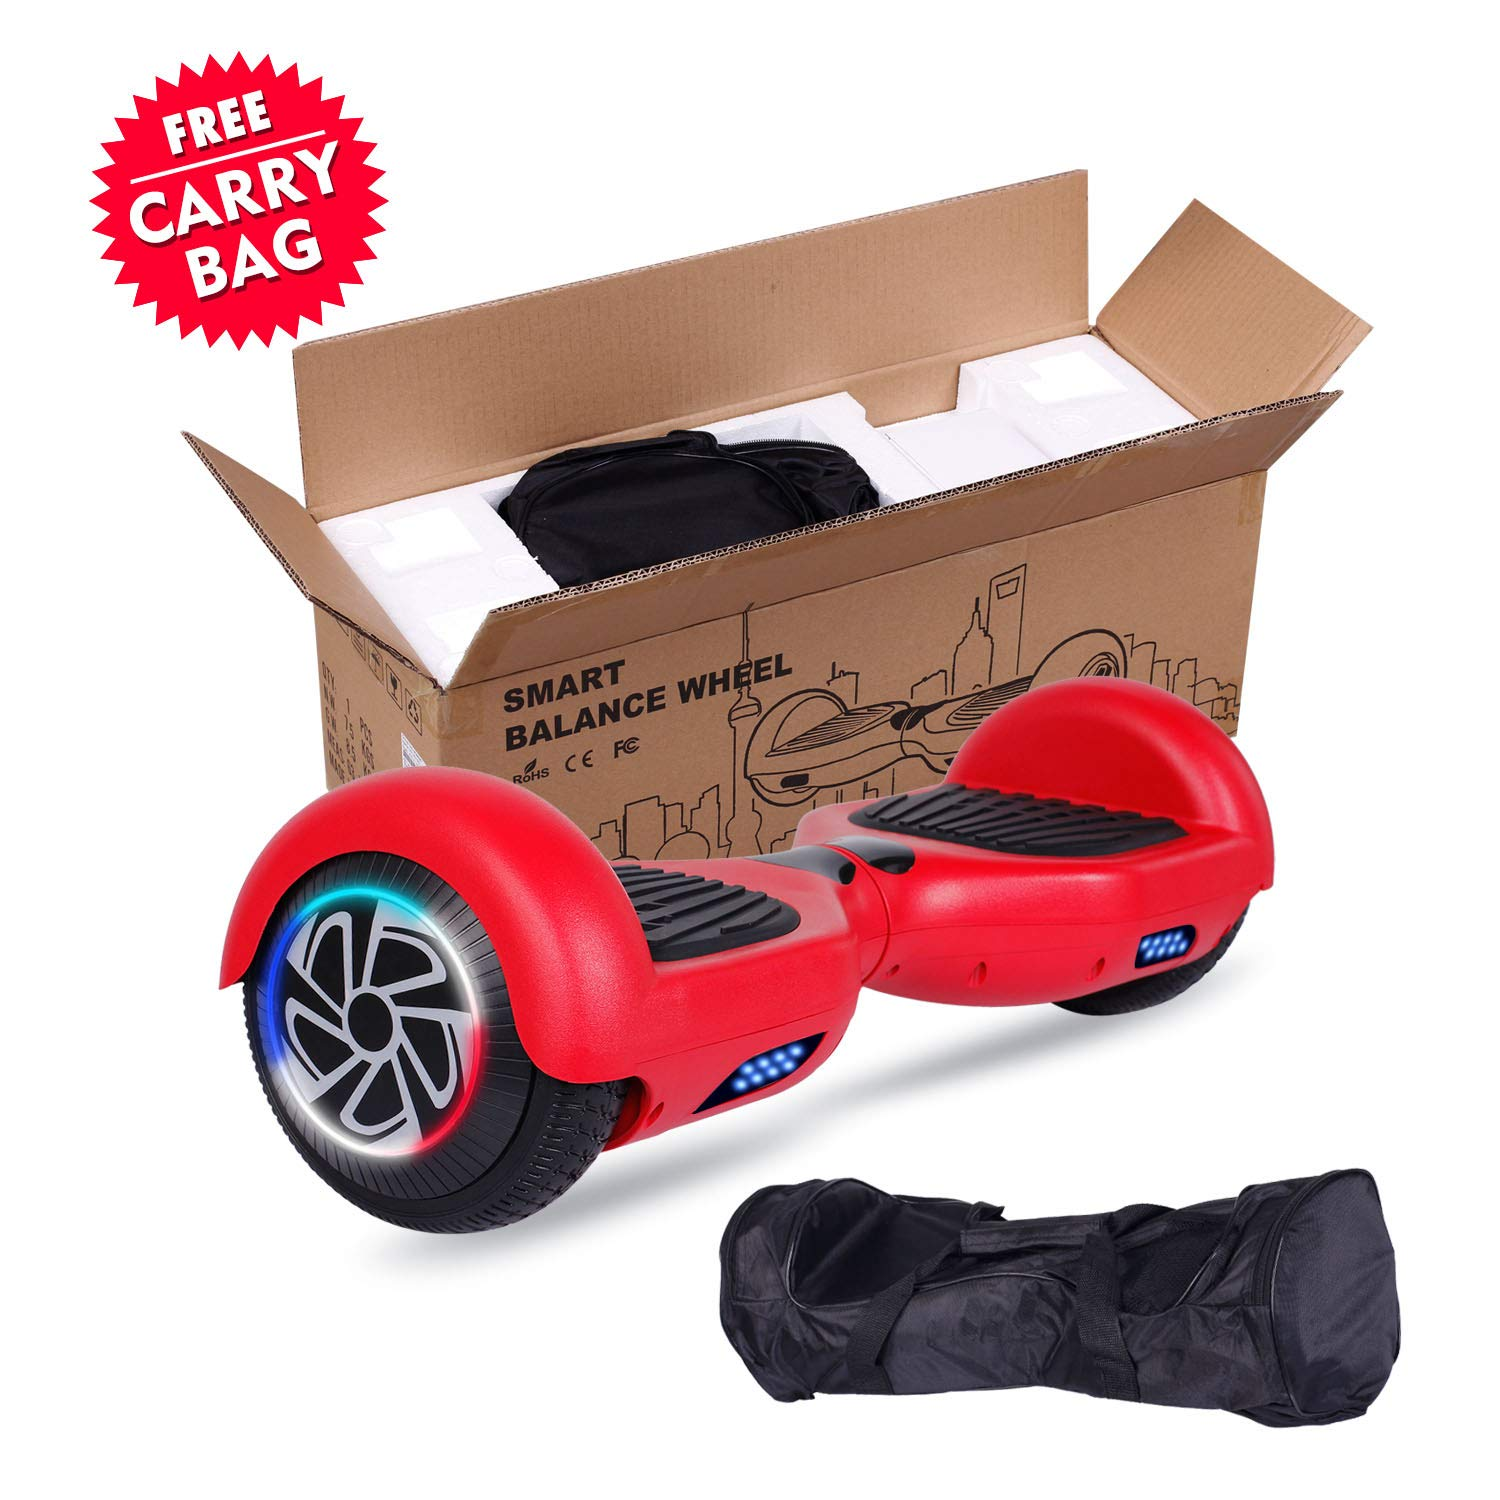 SISIGAD Hoverboard Self Balancing Scooter 6.5'' Two-Wheel Self Balancing Hoverboard with LED Lights Electric Scooter for Adult Kids Gift UL 2272 Certified - Red by SISIGAD (Image #7)